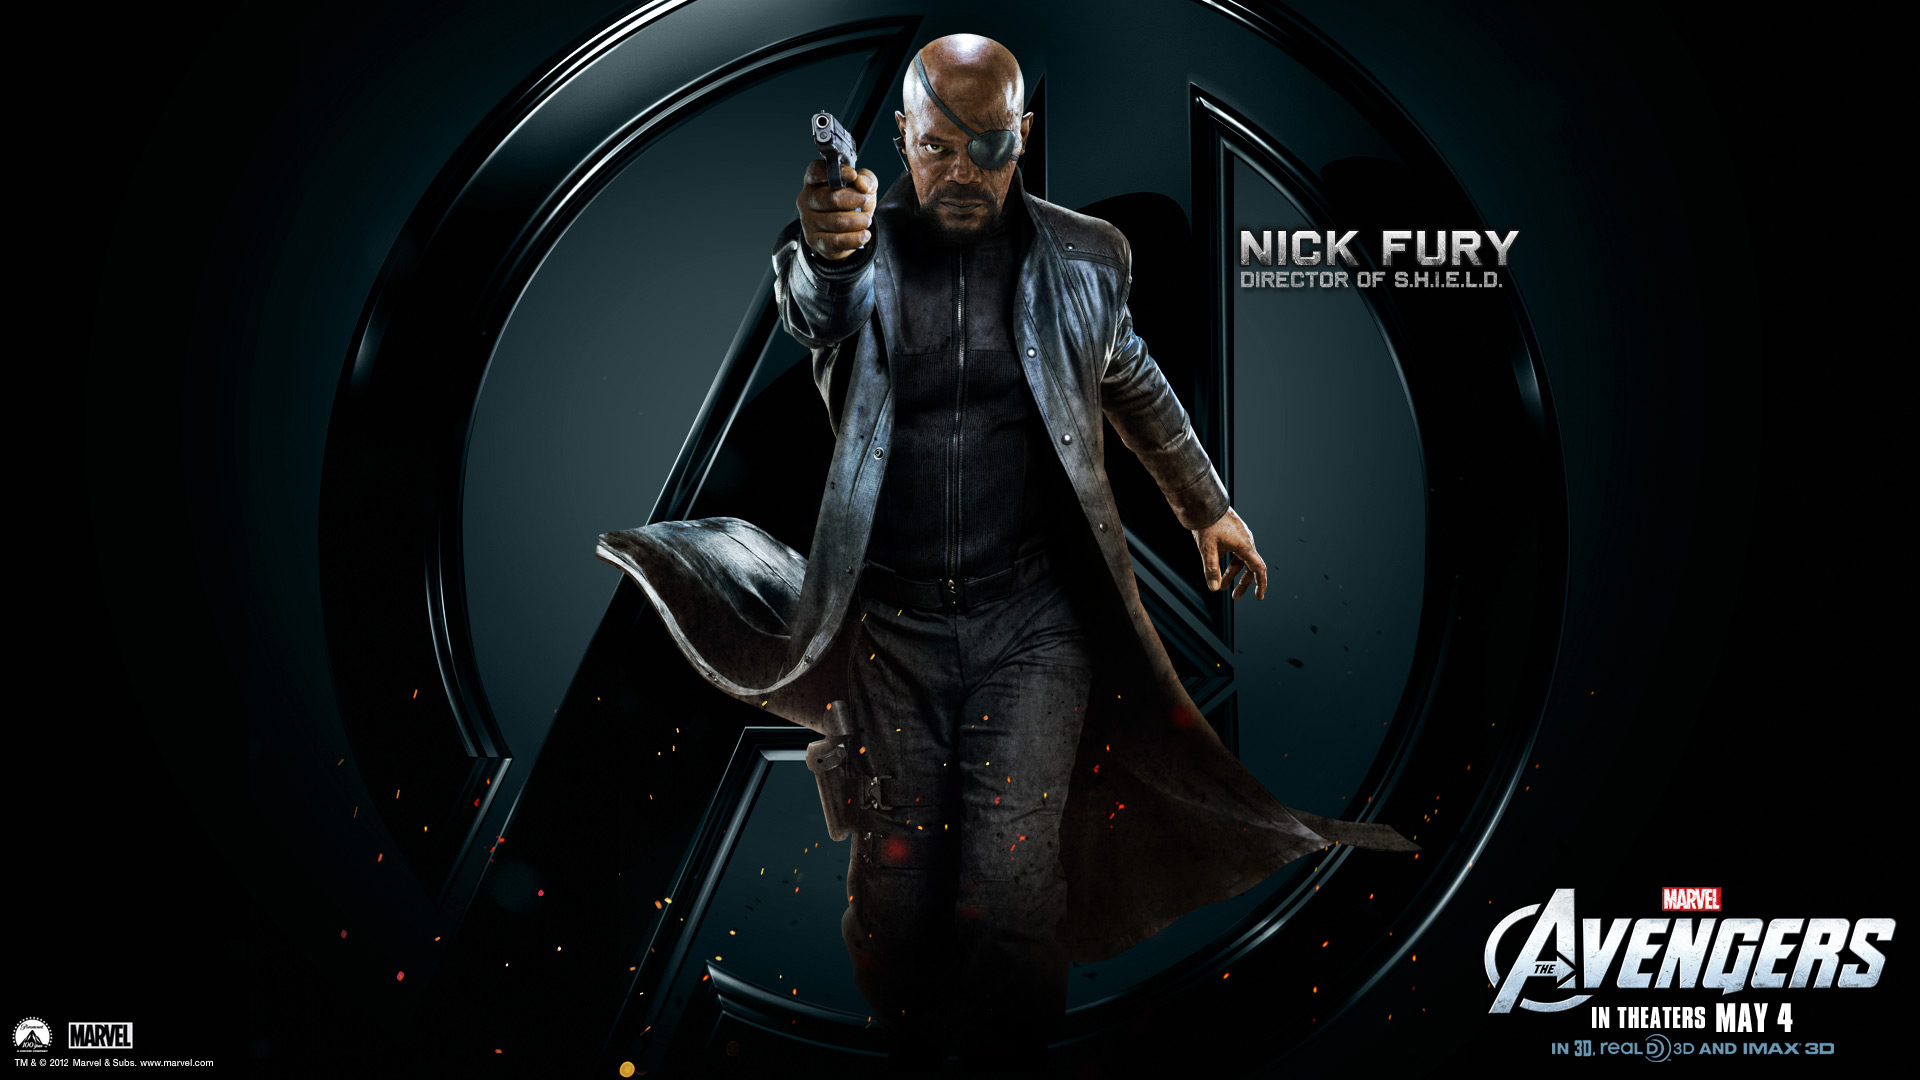 Avengers Wallpapers HD The Avengers Nick Fury HD Wallpapers 1920x1080